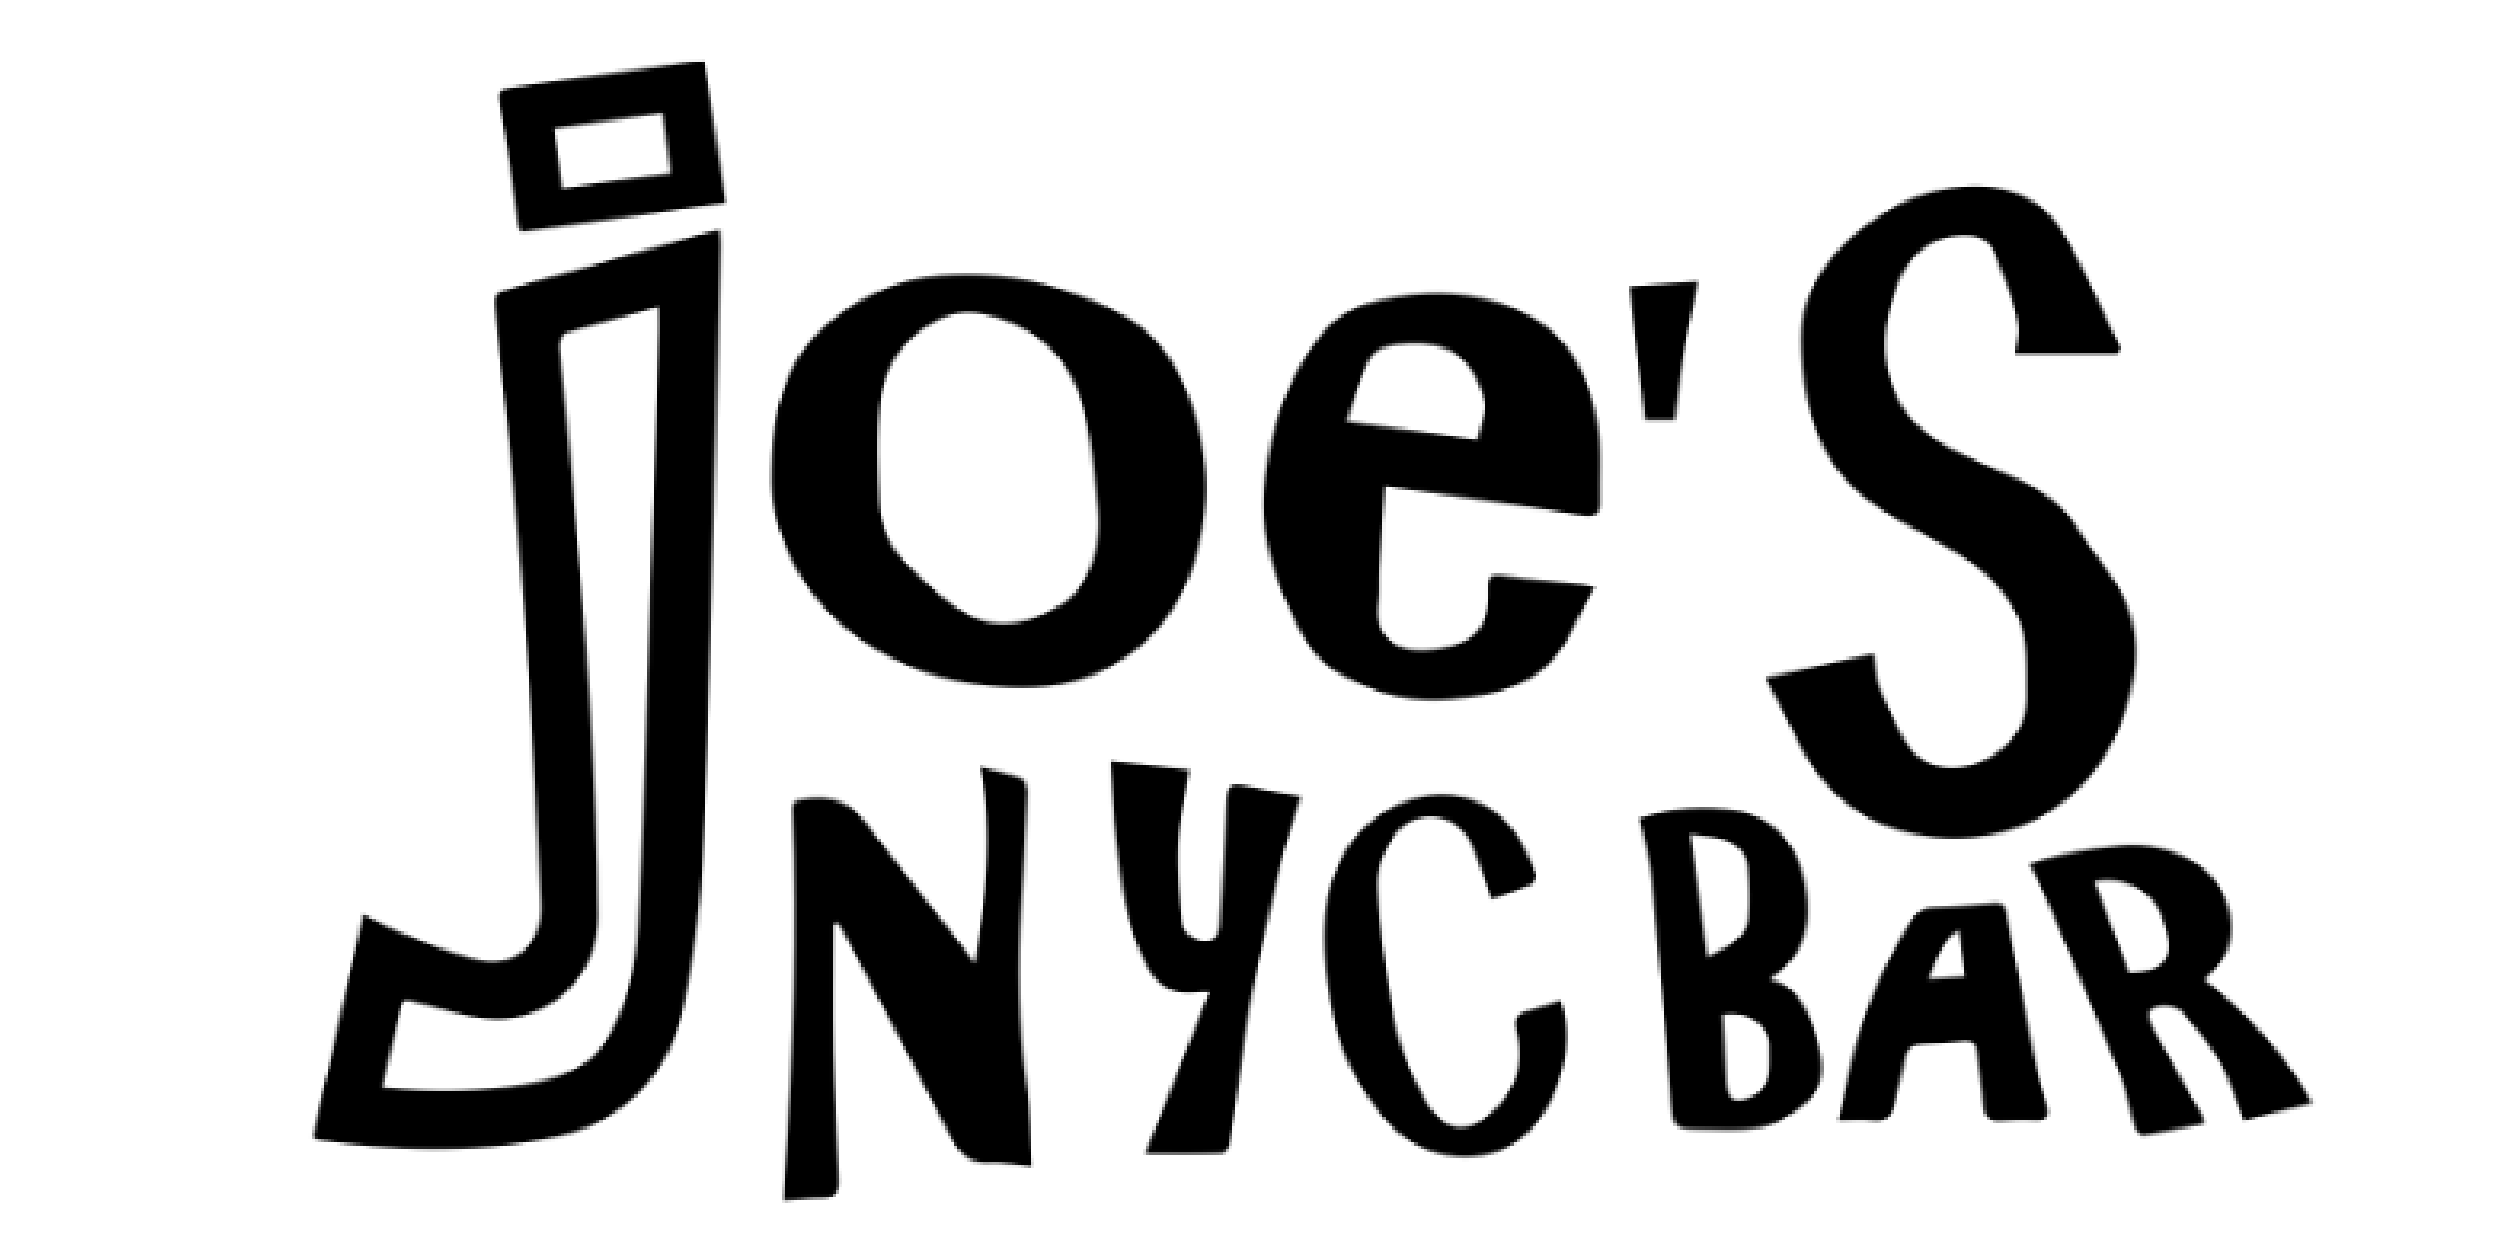 Image of Joe's NYC Bar